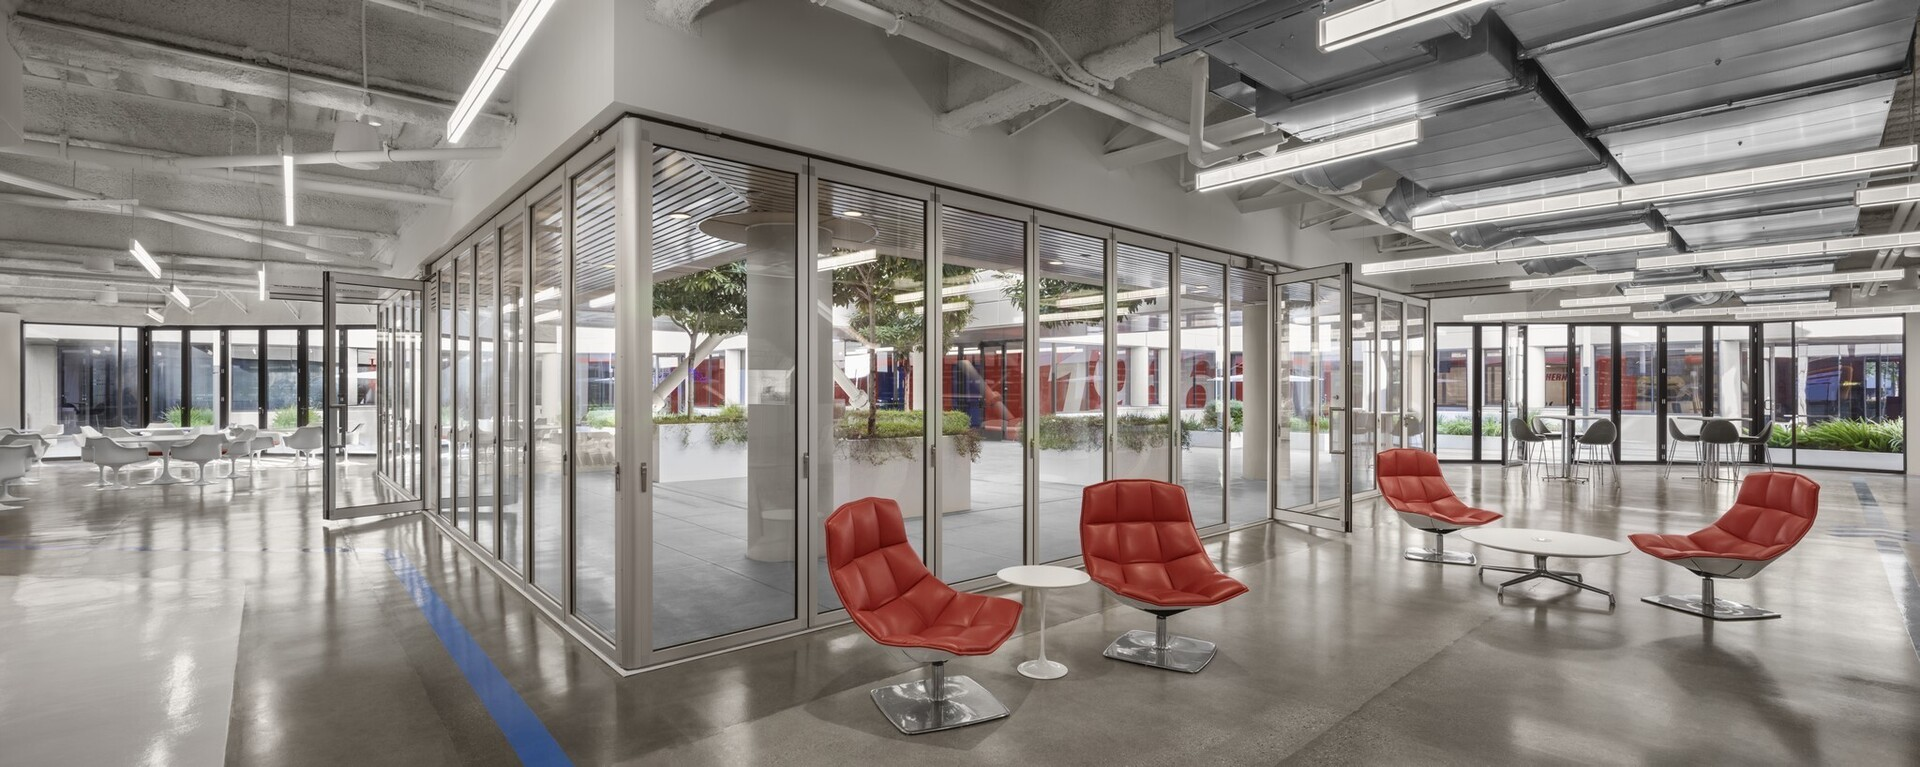 The moveable walls that make the open atrium practical are NanaWall opening glass wall systems. The longest is a single track sliding HSW60 system of 24 individual panels in two groups, over 80 feet in length. Two SL70 folding systems, 26 and 27 feet respectively, extend the atrium opening to more than 130 feet in all. The sliding panels go around corners, and three systems together account for about 75% of the area surrounding the atrium.